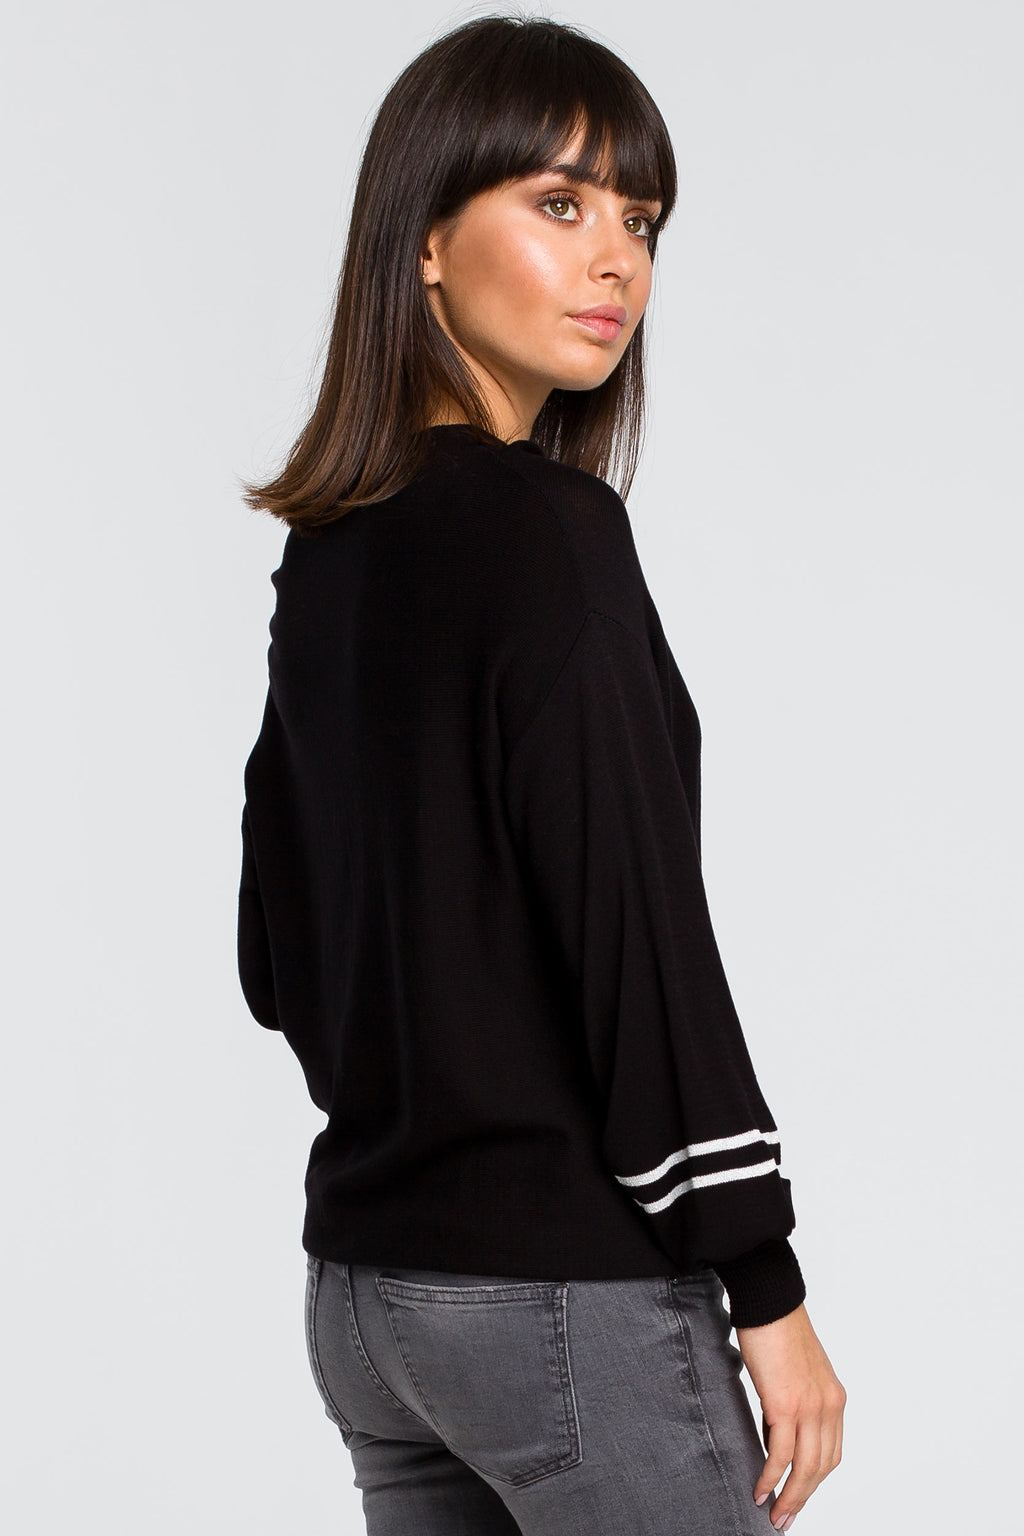 Black Bell Sleeve Lightweight Pullover - So Chic Boutique